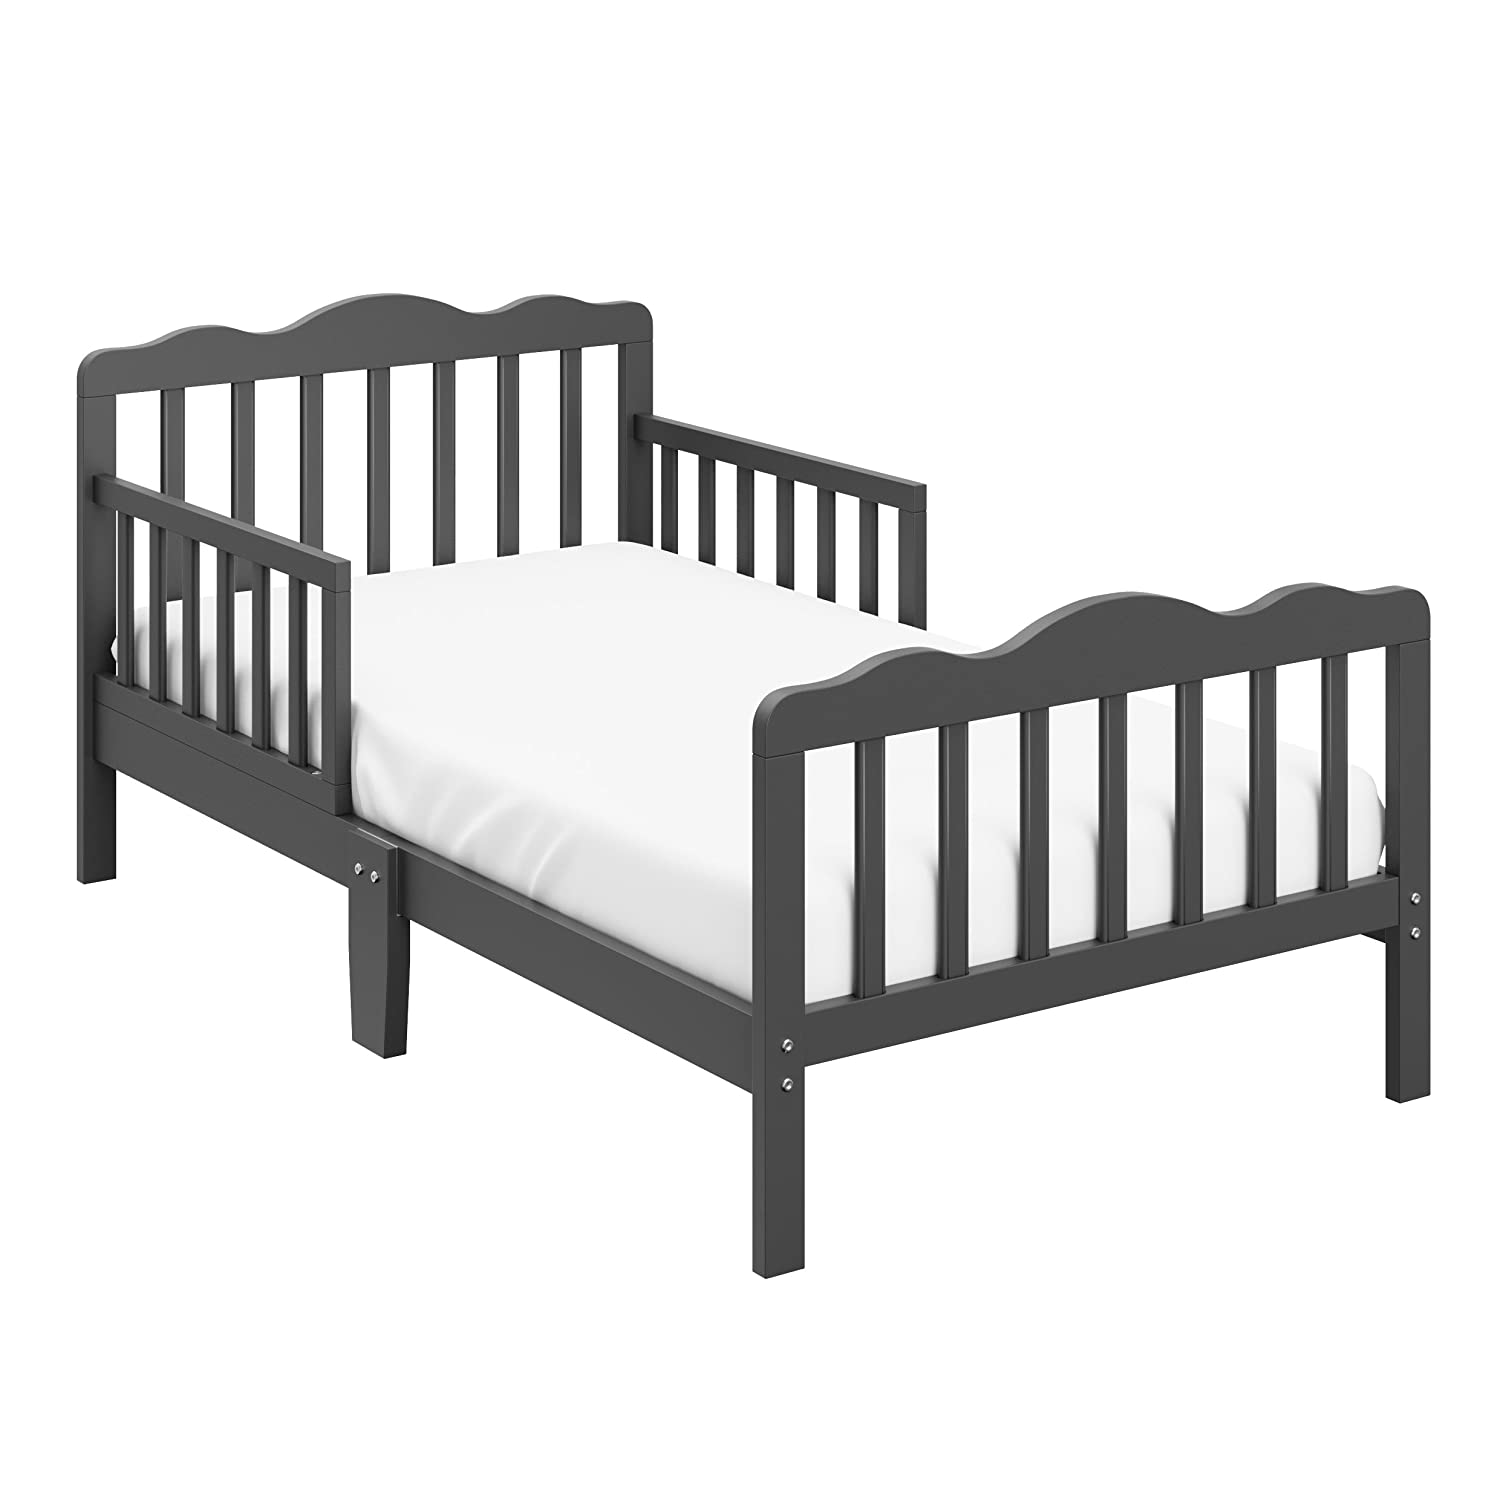 Storkcraft Hillside Toddler Bed Gray Fits Standard-Size Toddler Mattress, Guardrails on Both Sides for Added Protection, Meets or Exceeds all Federal Safety Standards, Pine & Composite Construction 05251-10G